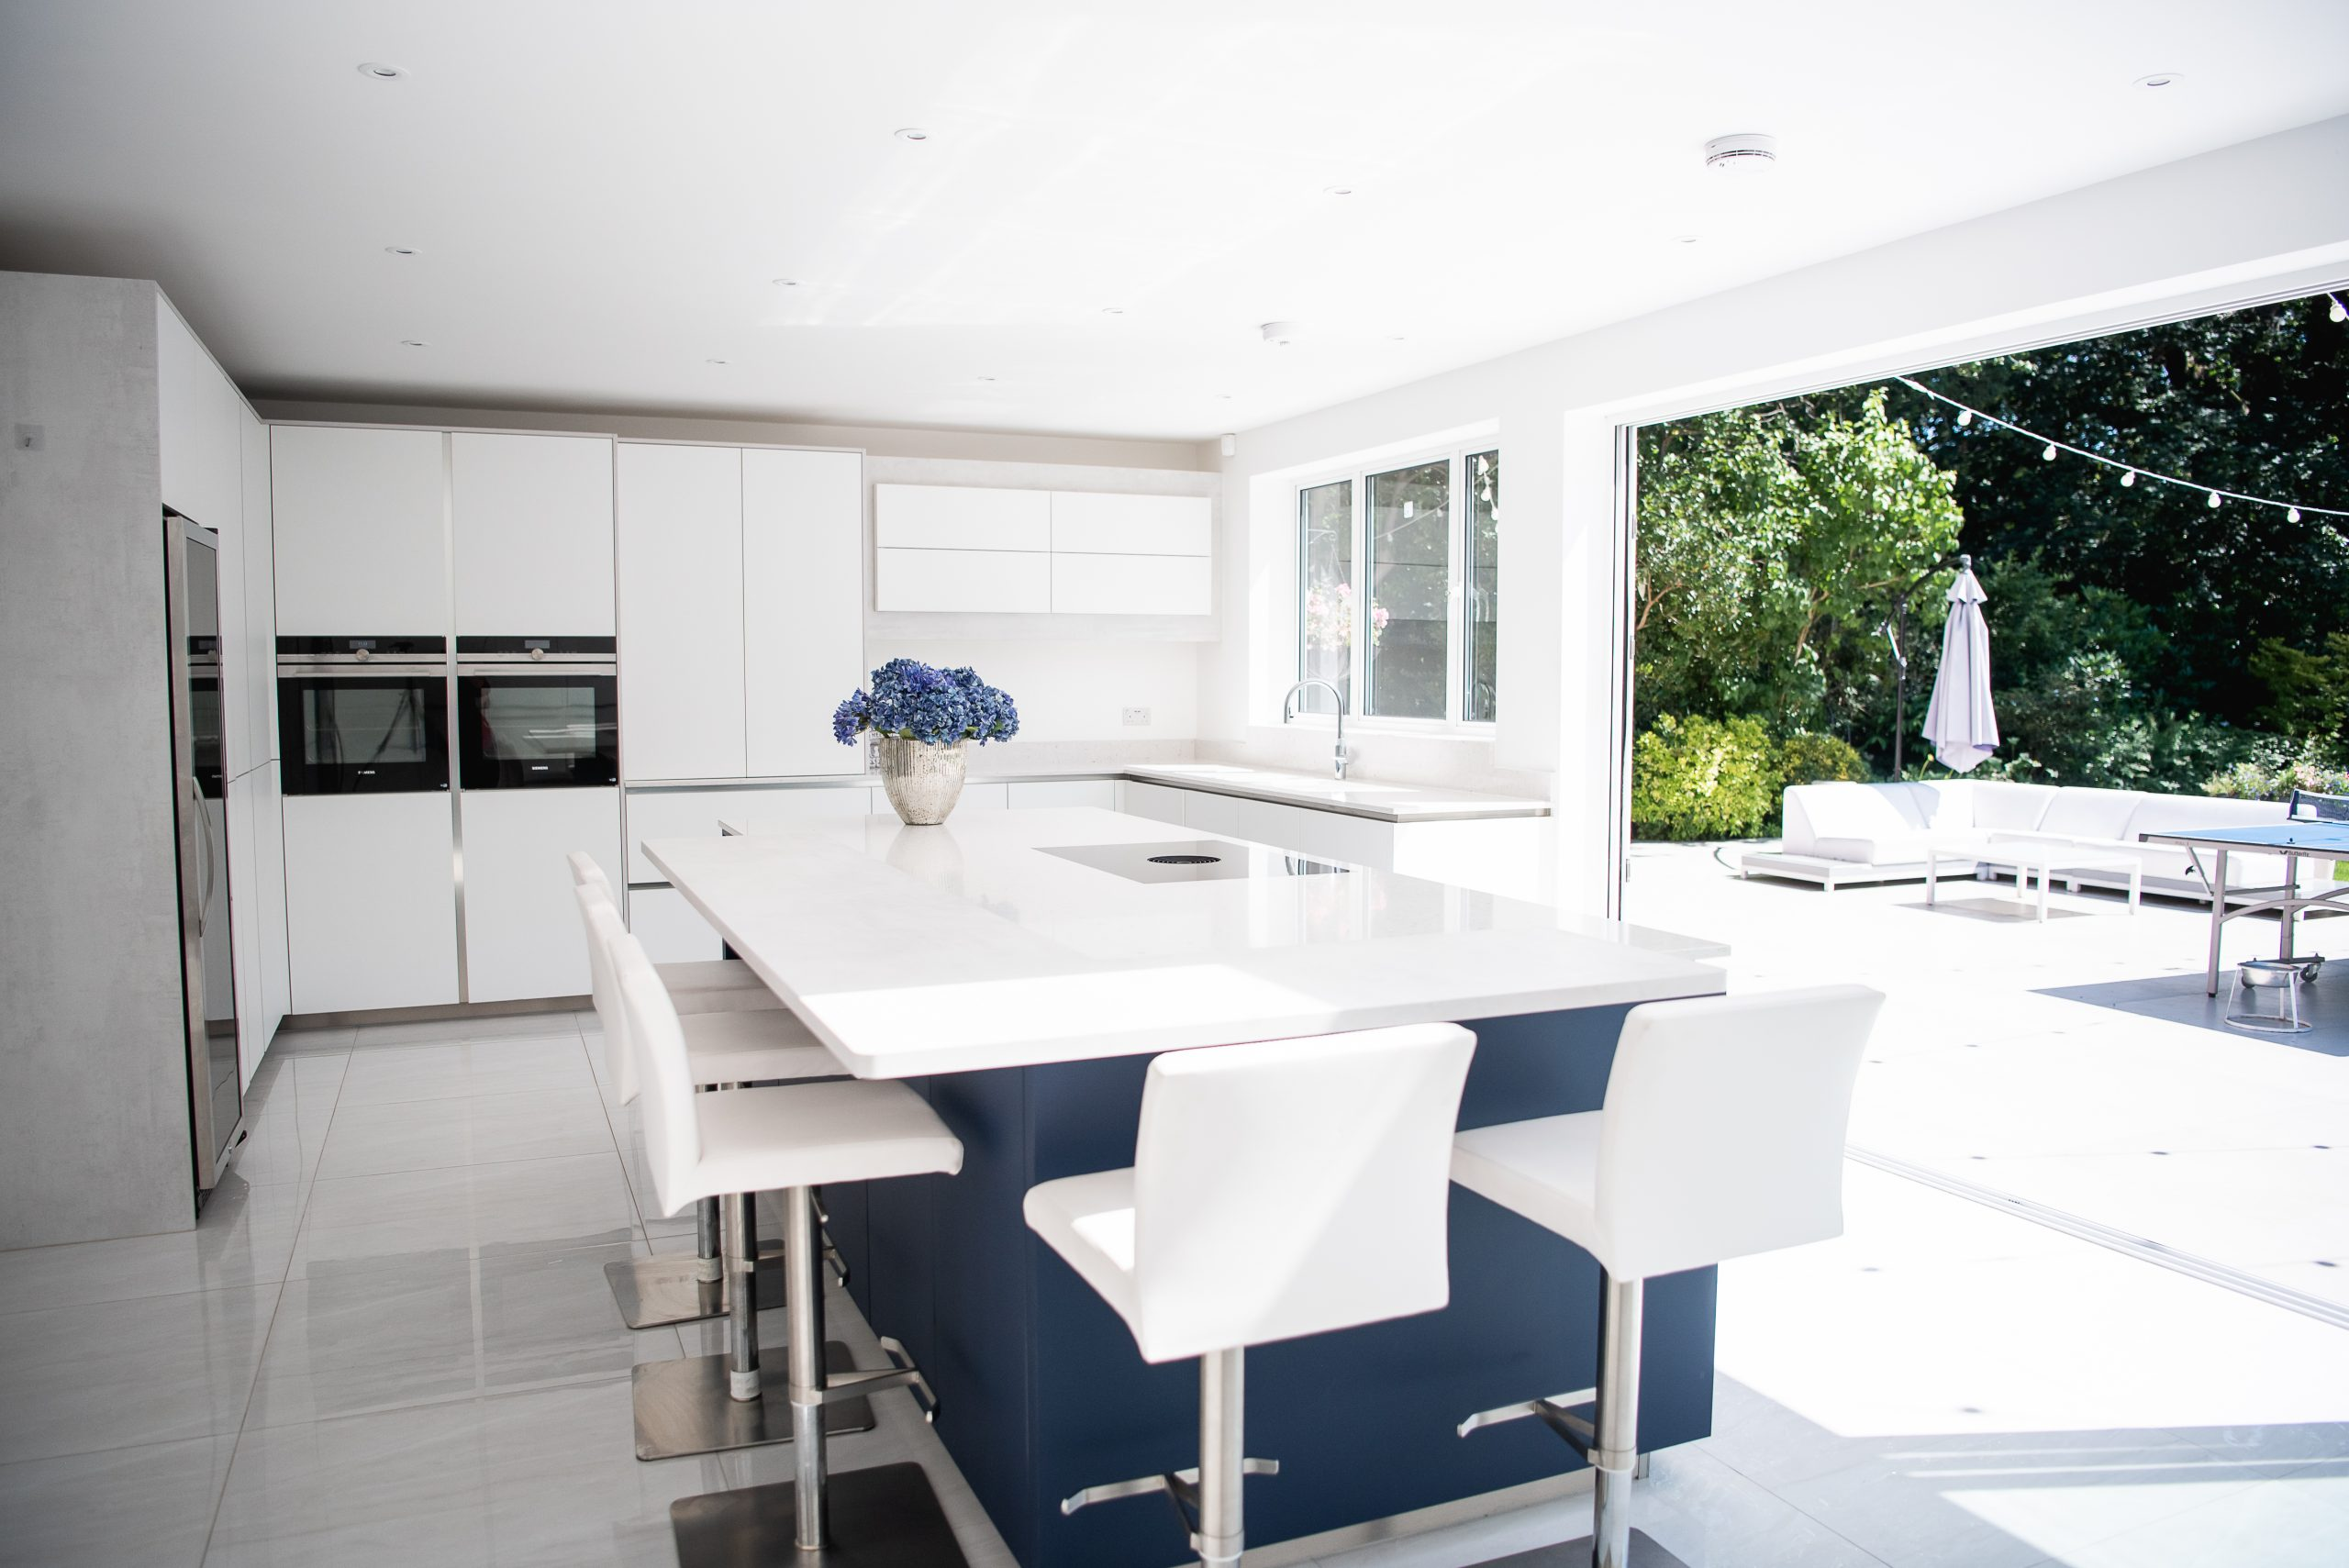 White kitchen extension with blue island with breakfast bar